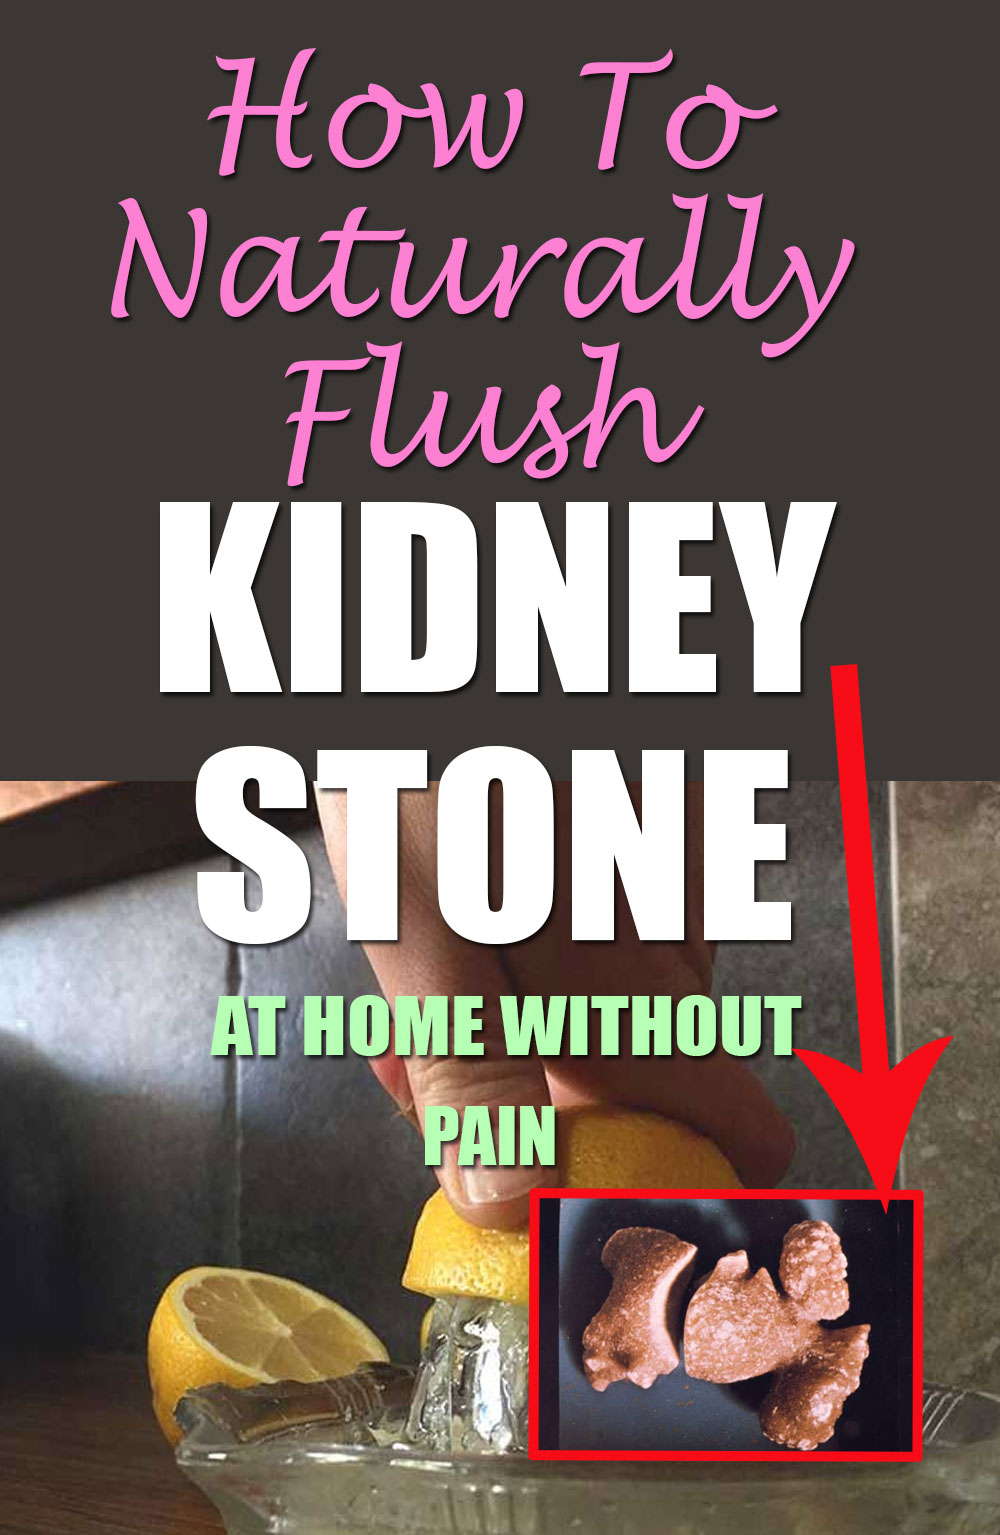 How To Naturally Flush Kidney Stones